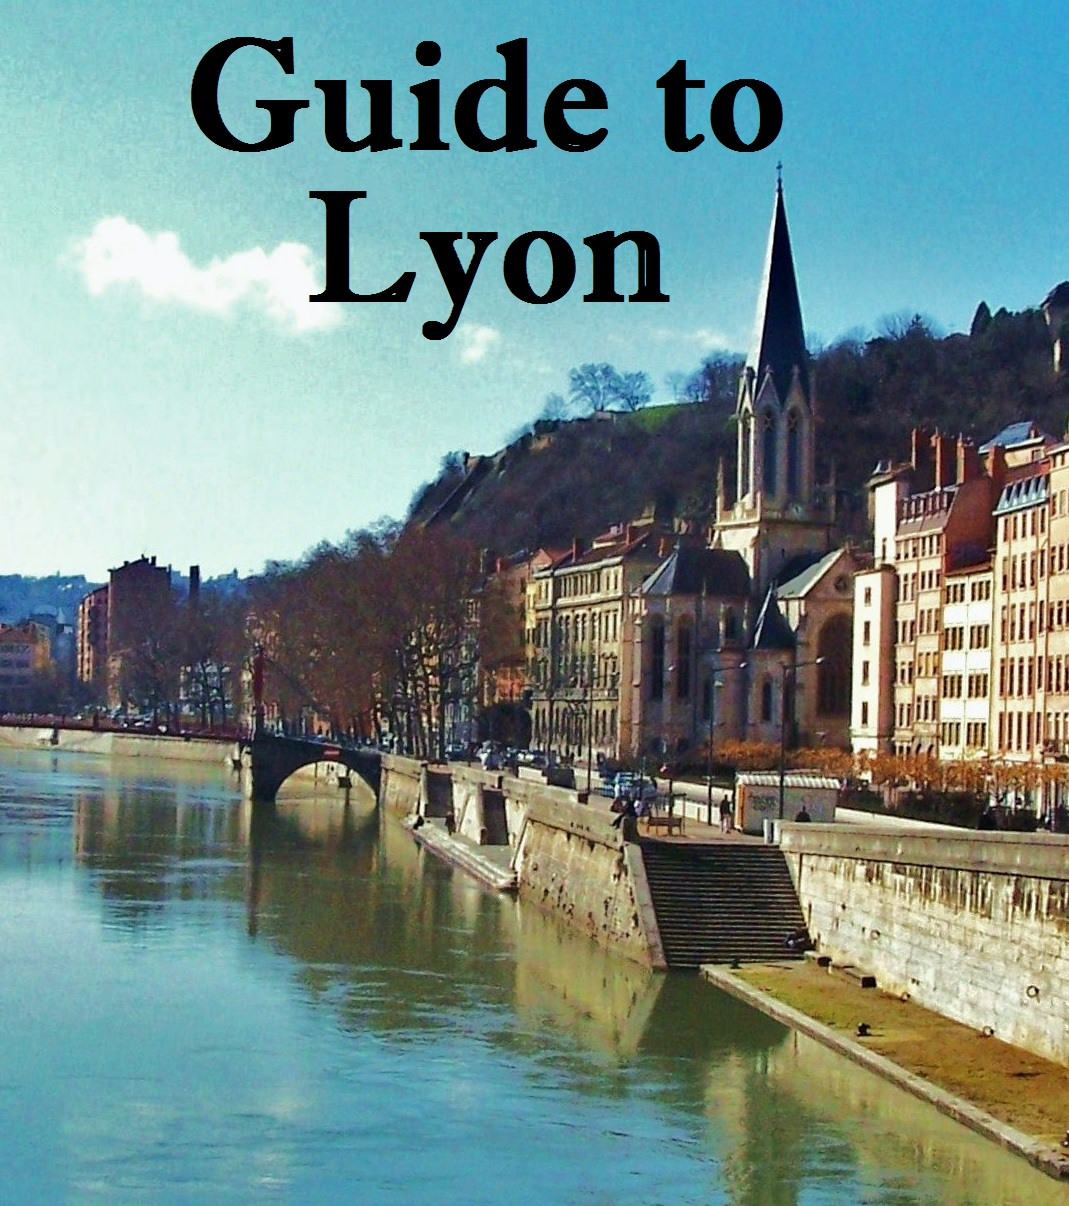 Guide to Lyon By: Euprintpress Publishing